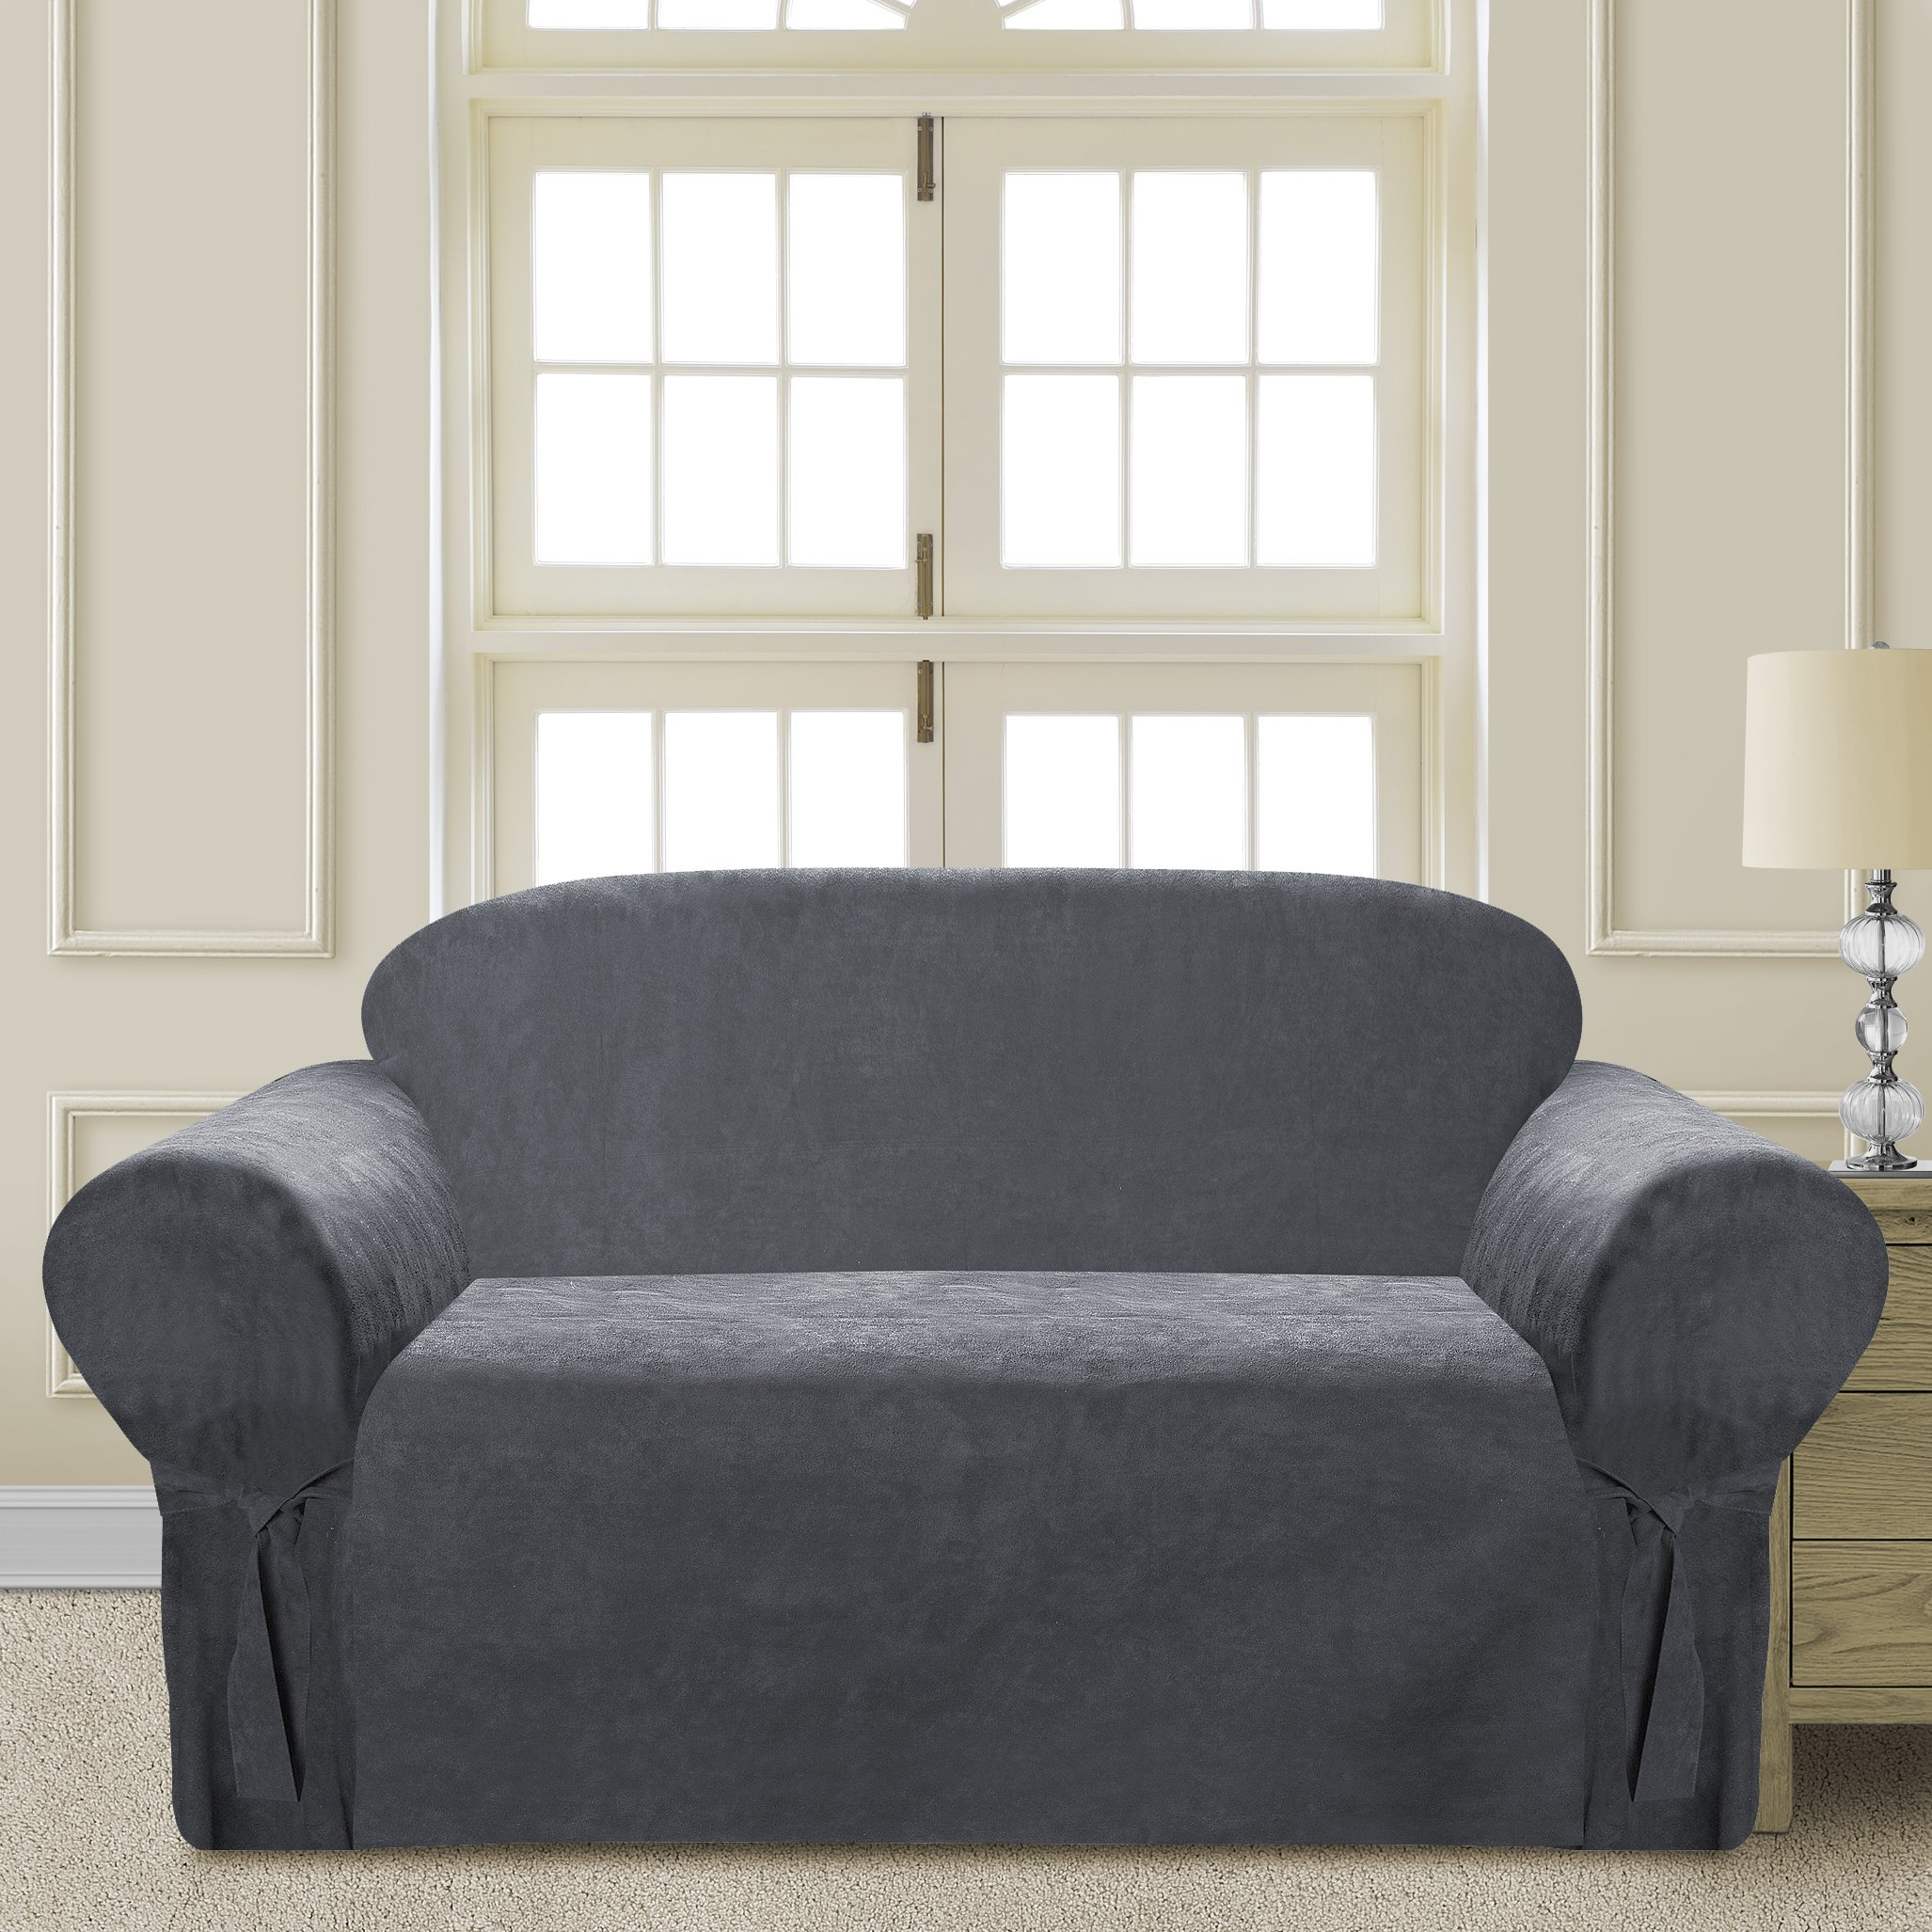 Comfy Bedding Microsuede Sofa Furniture Slipcover with Elastic Straps under Seat Cushion (Gray, Loveseat)